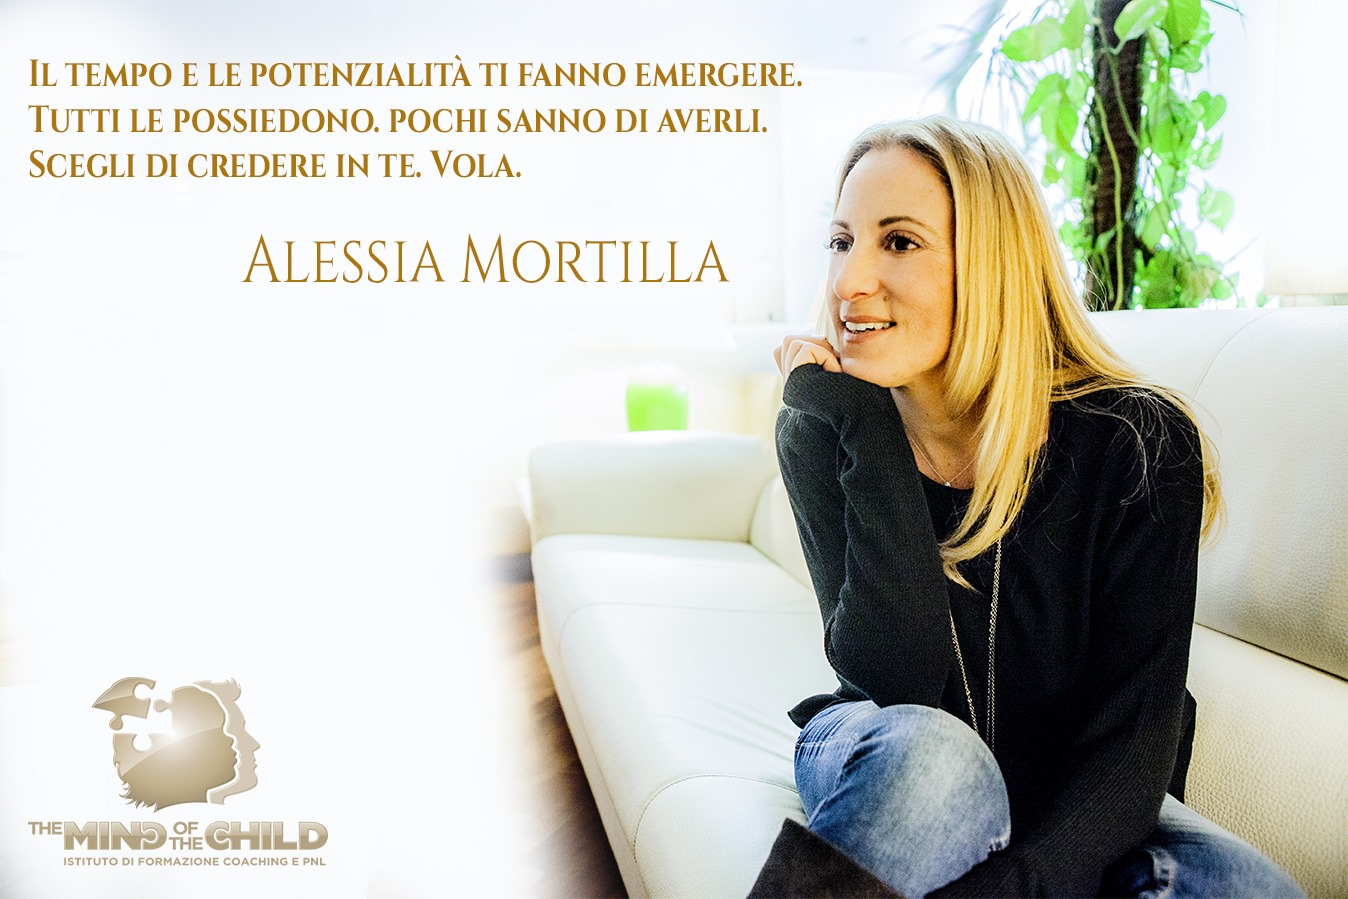 alessia mortilla